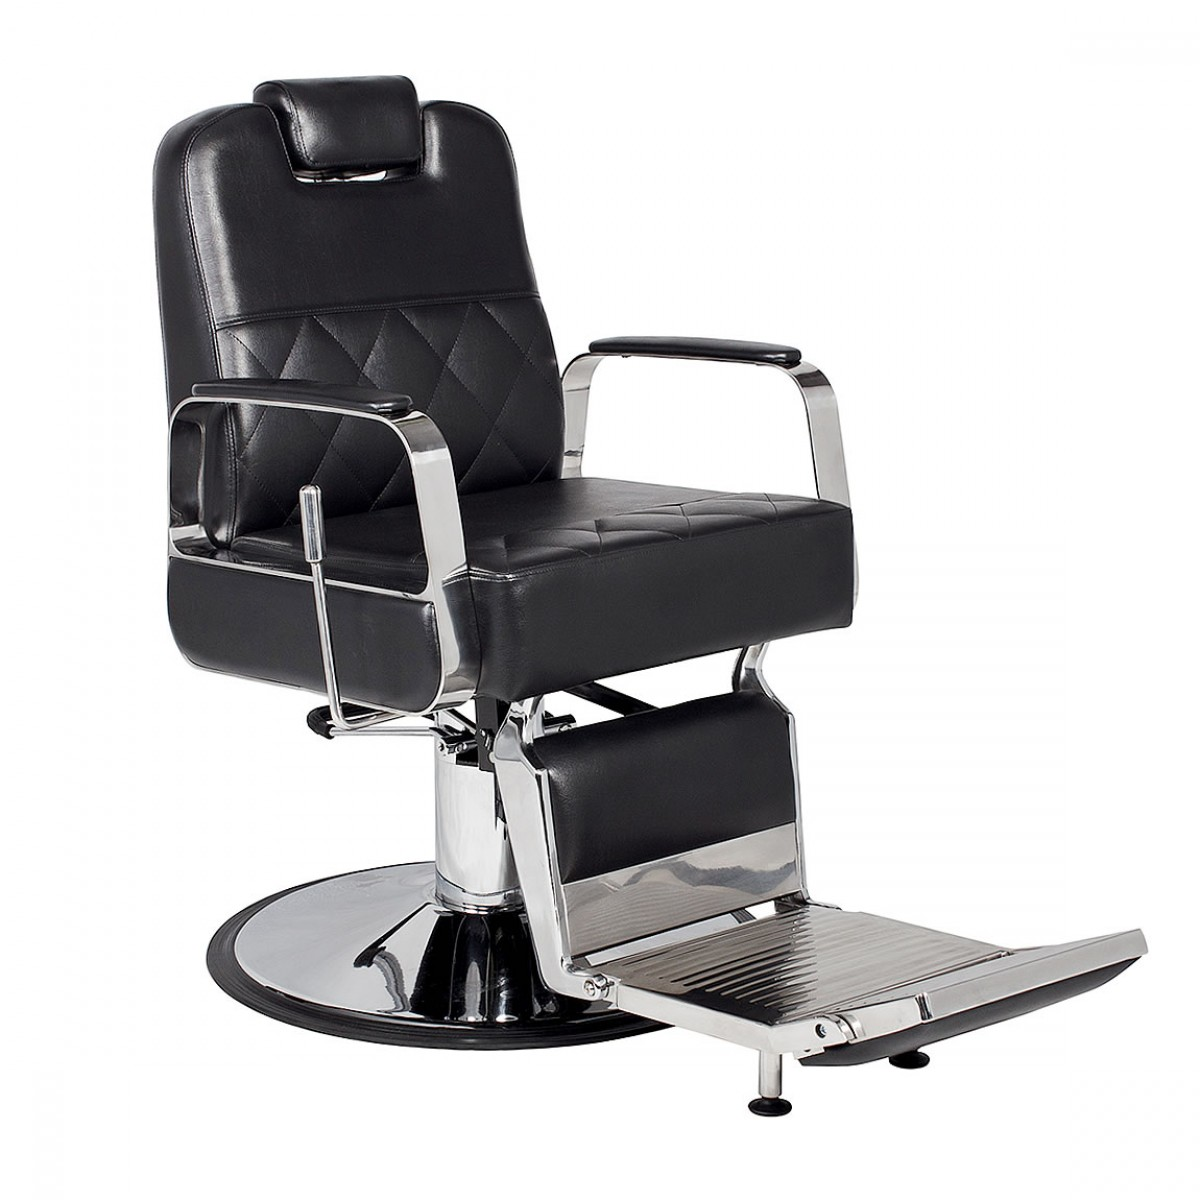 keller barber chair parts best ergonomic desk chairs 2018 duke heavy duty barbershop with pump spring sale